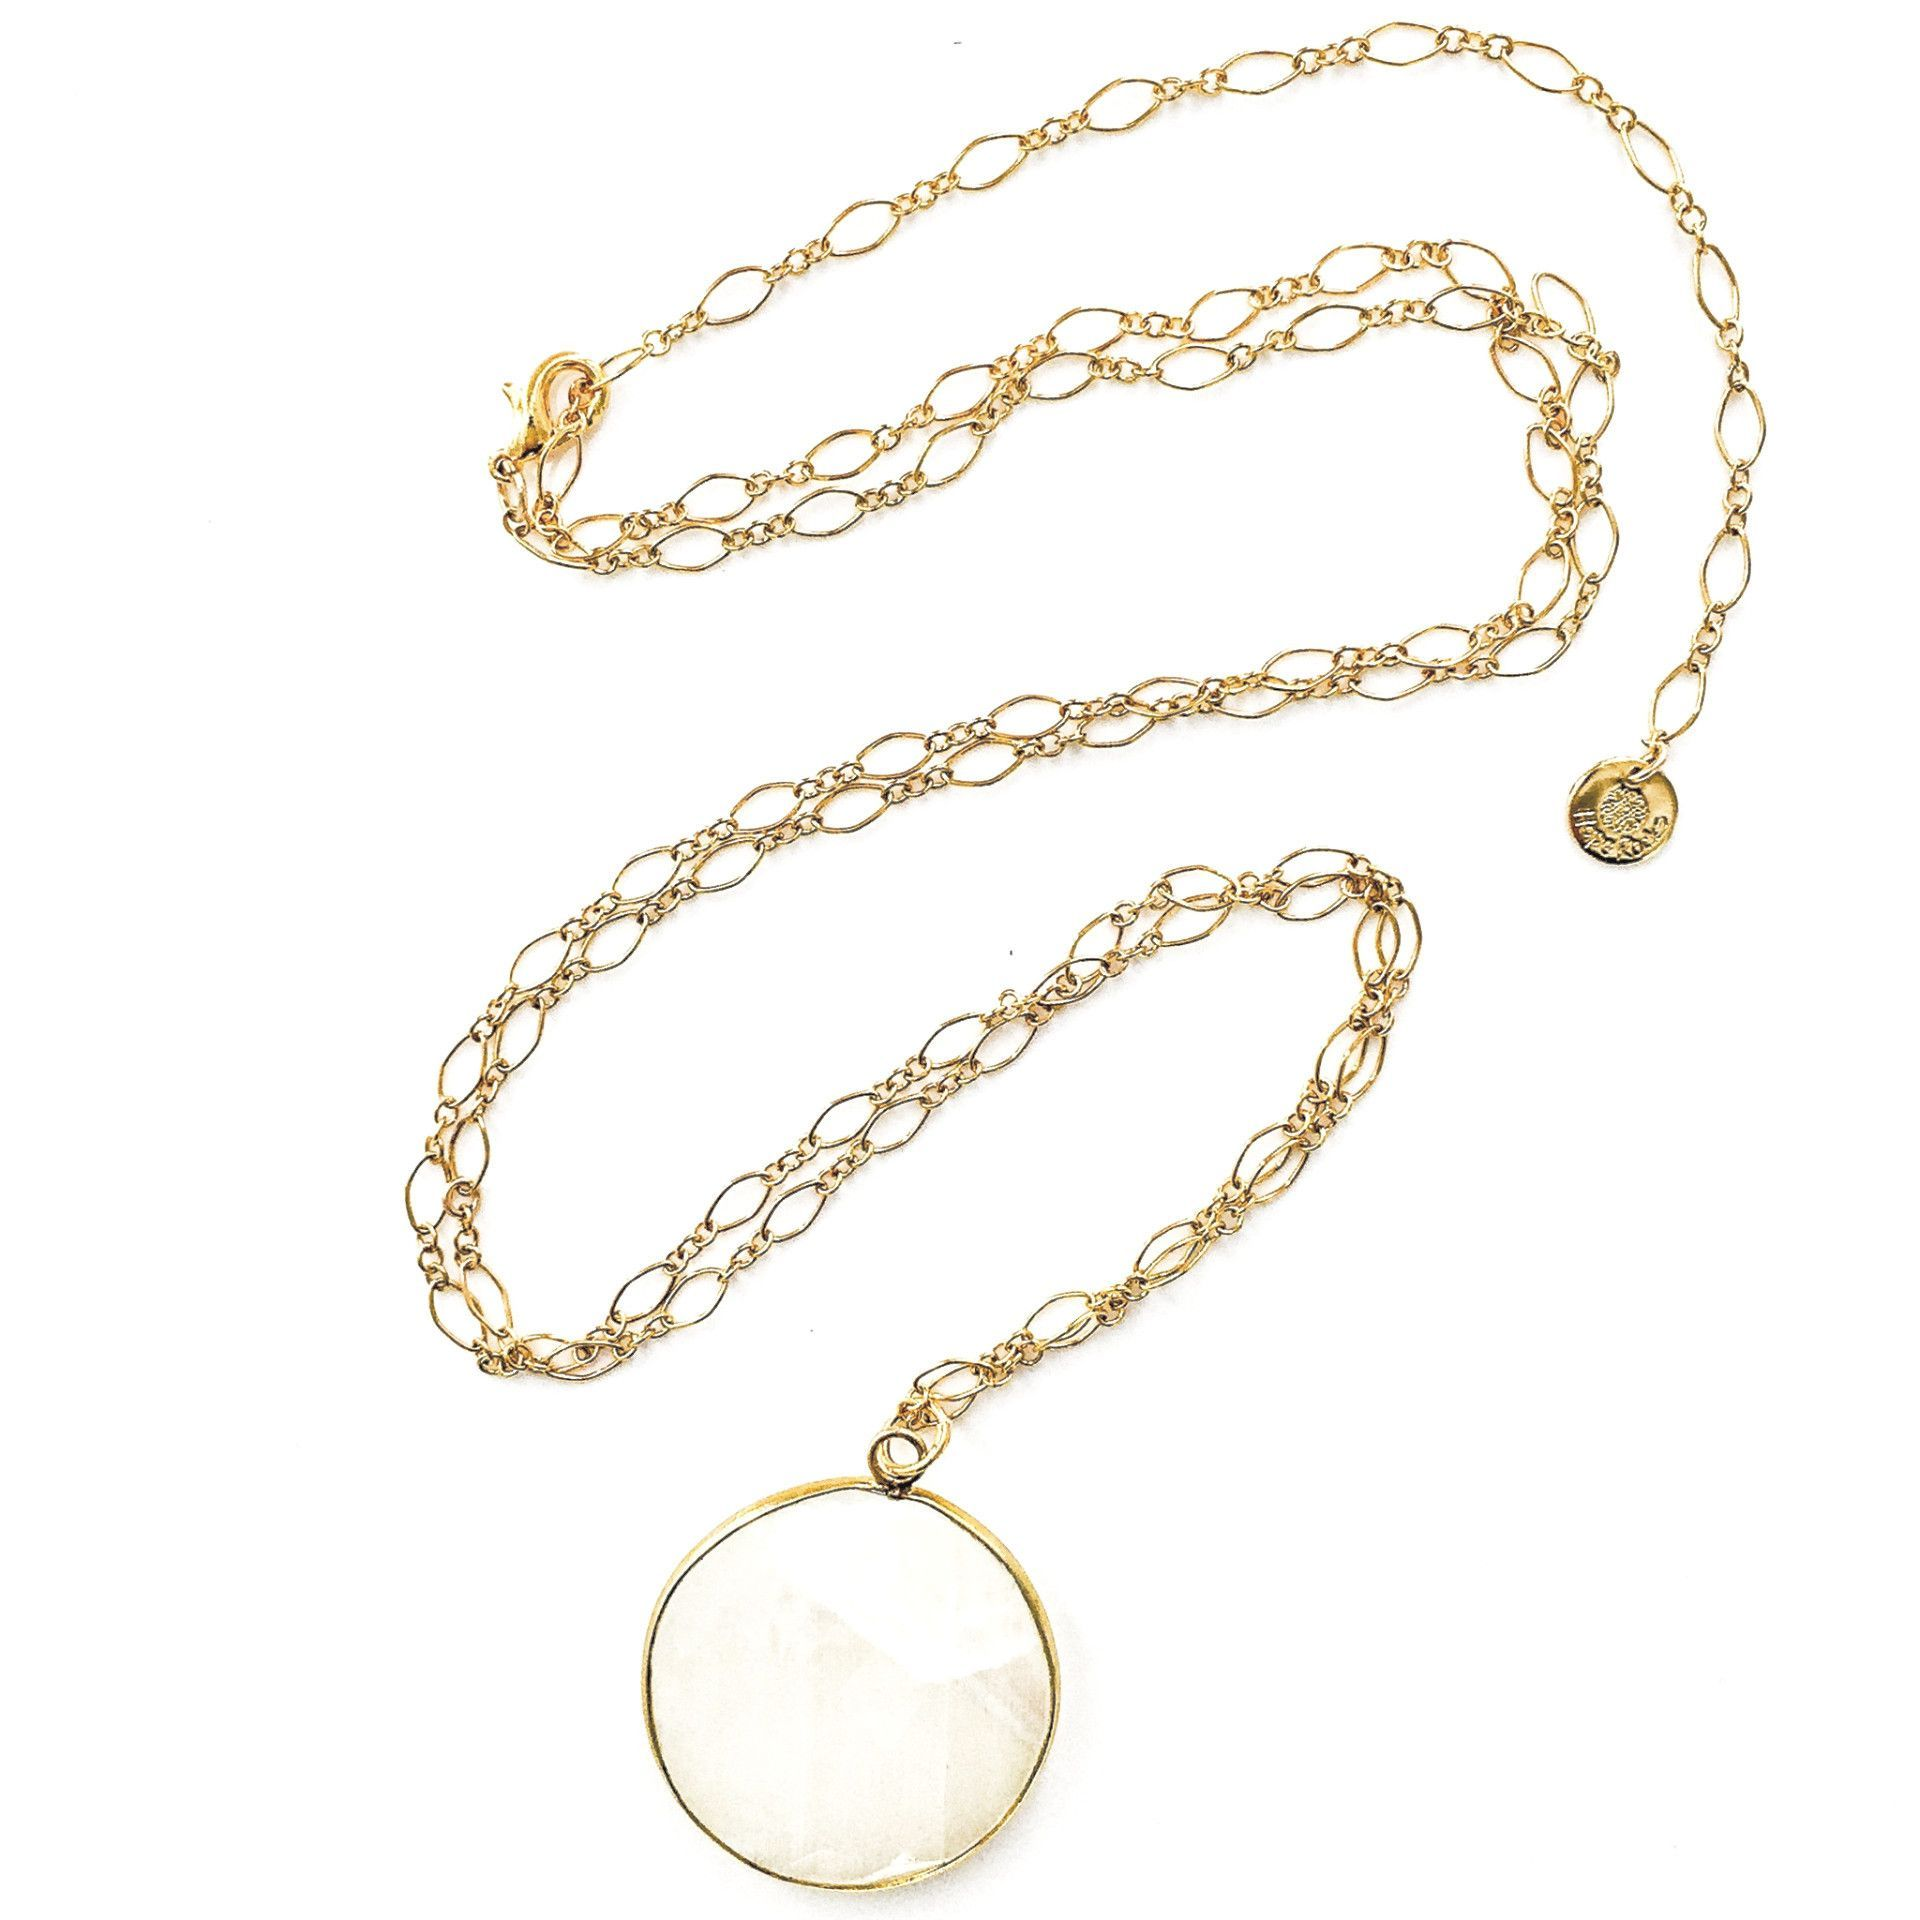 Moonstone and Gold Pendant Necklace